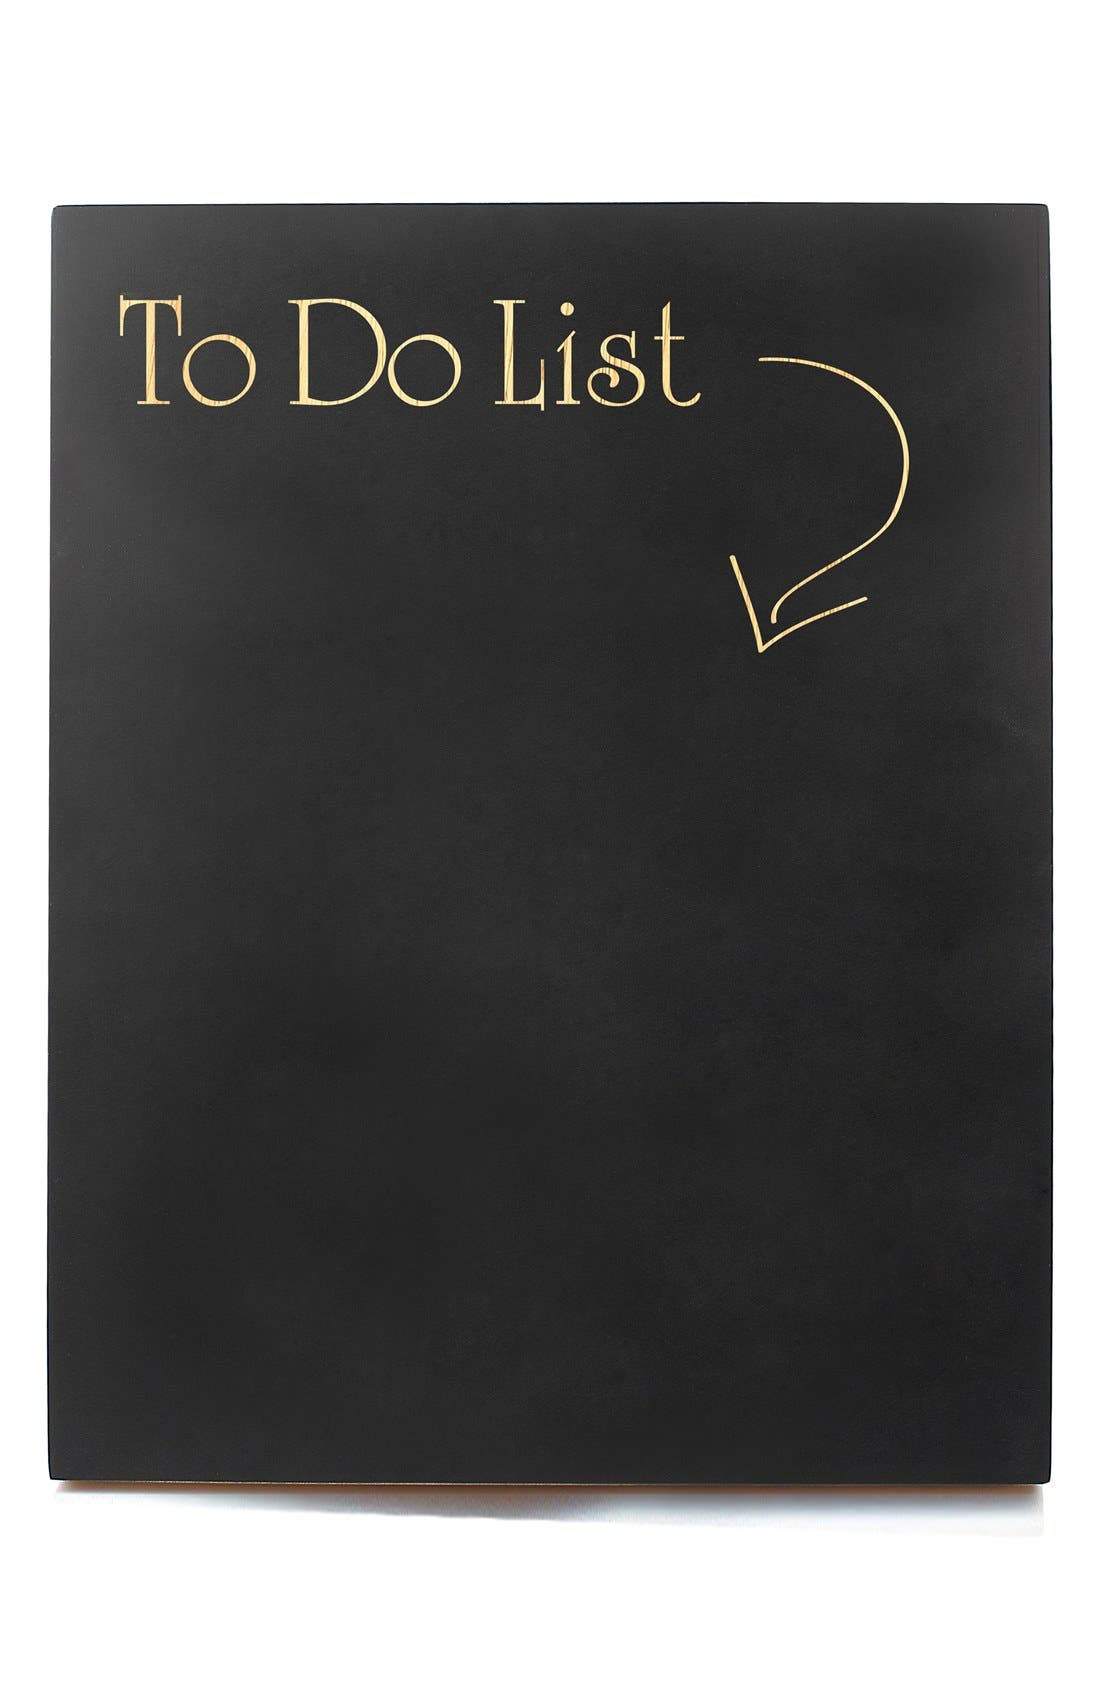 Main Image - Cathy's Concepts 'To Do List' Chalkboard Sign